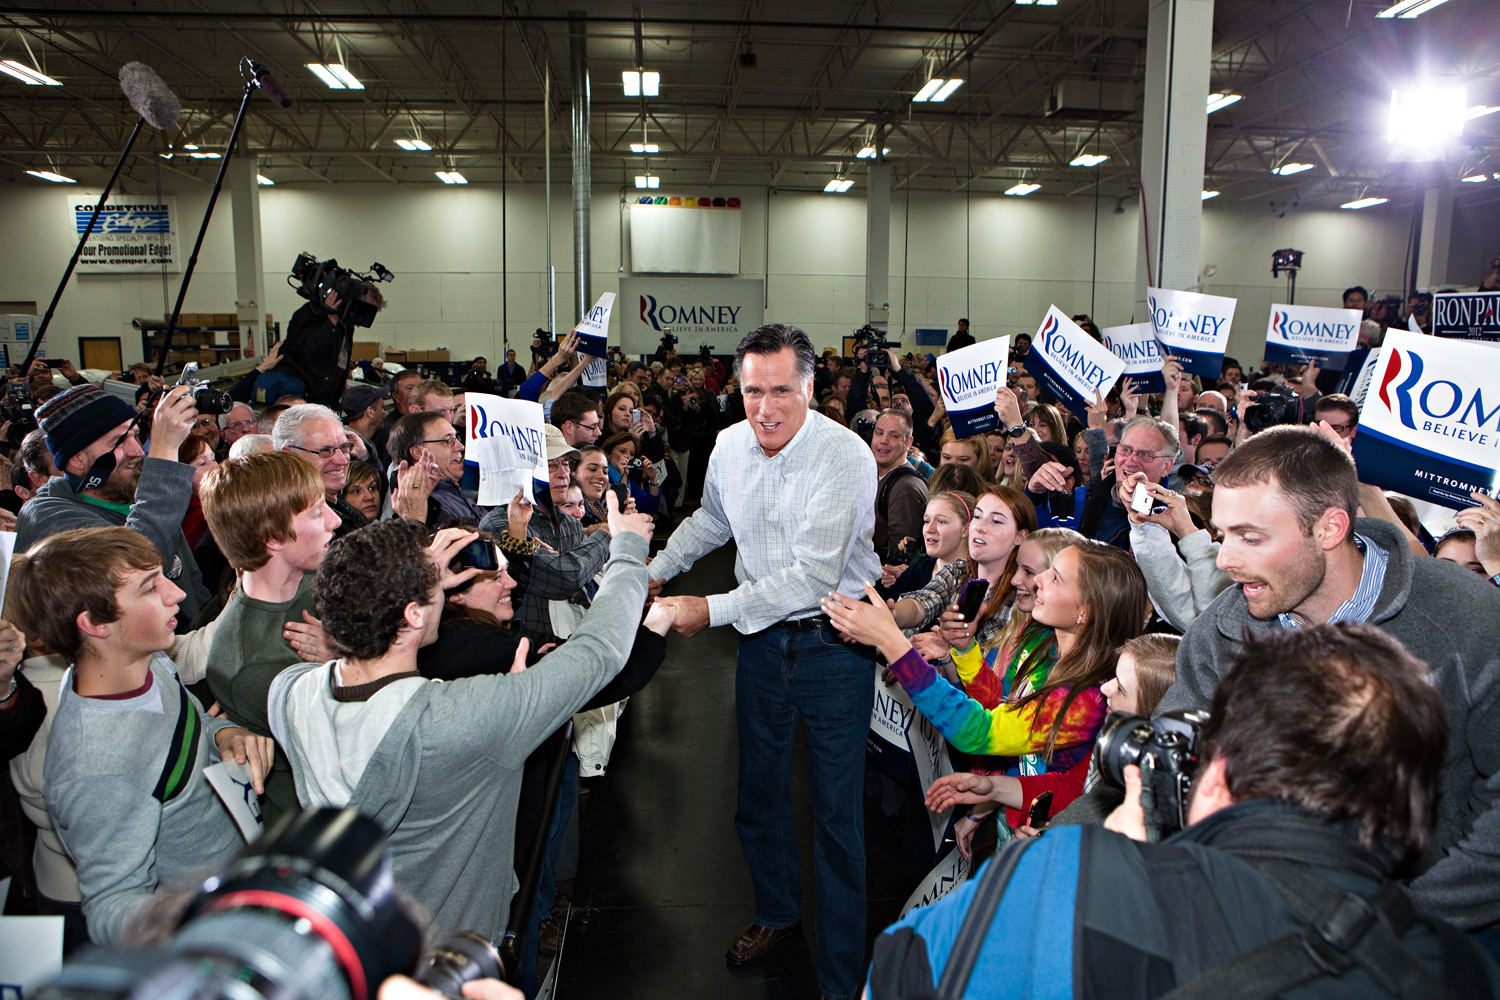 Mitt Romney greets crowds of campaign supporters at Competitive Edge in Clive, Iowa the day before the caucus on January 2, 2012.